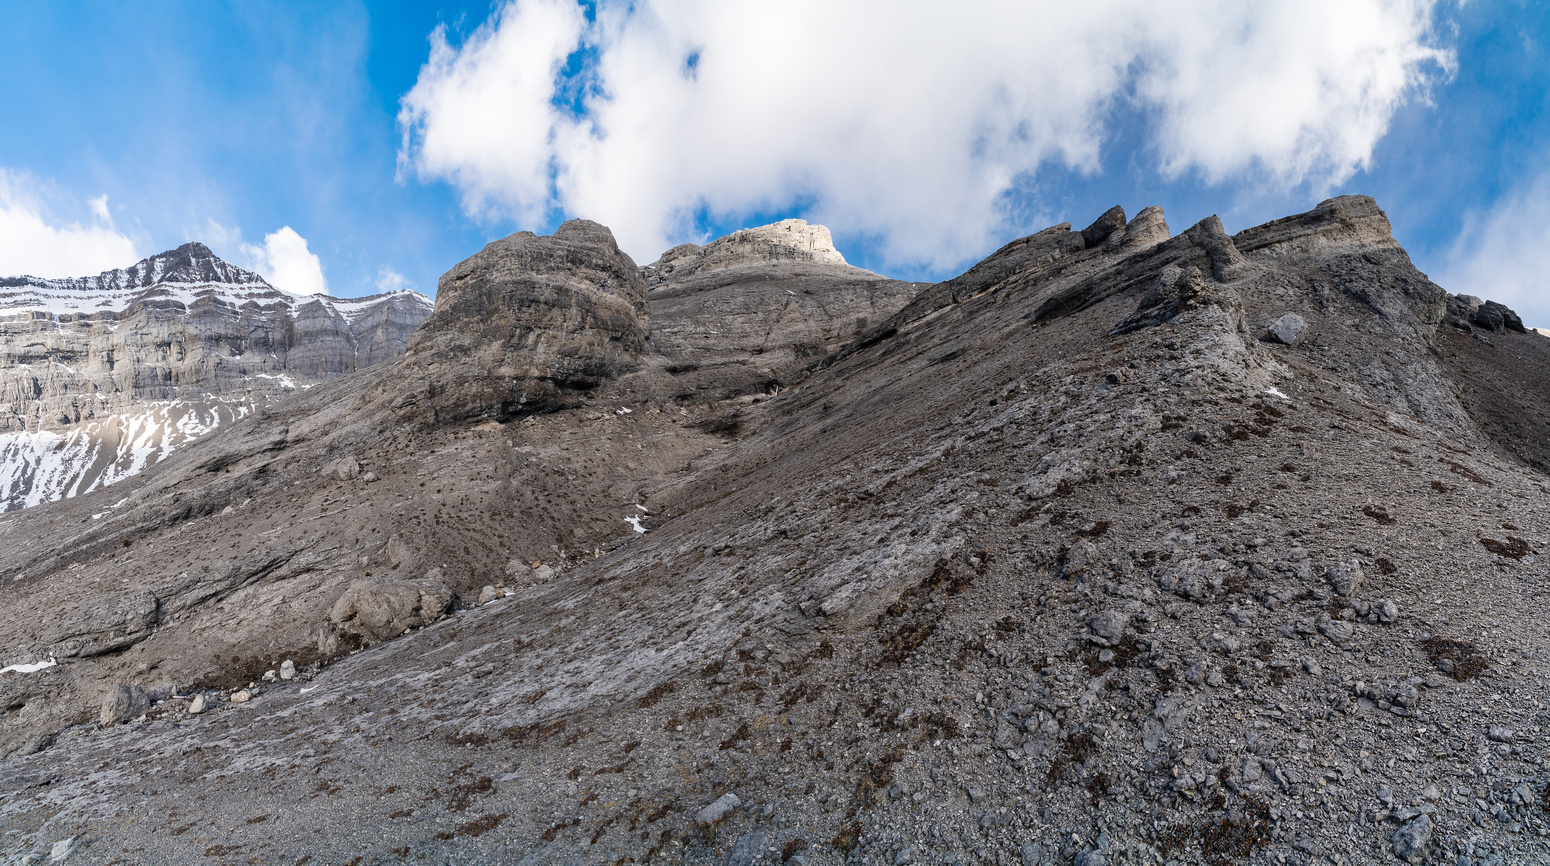 This is why you have to traverse to the south ridge proper - this terrain  blocks SE access.